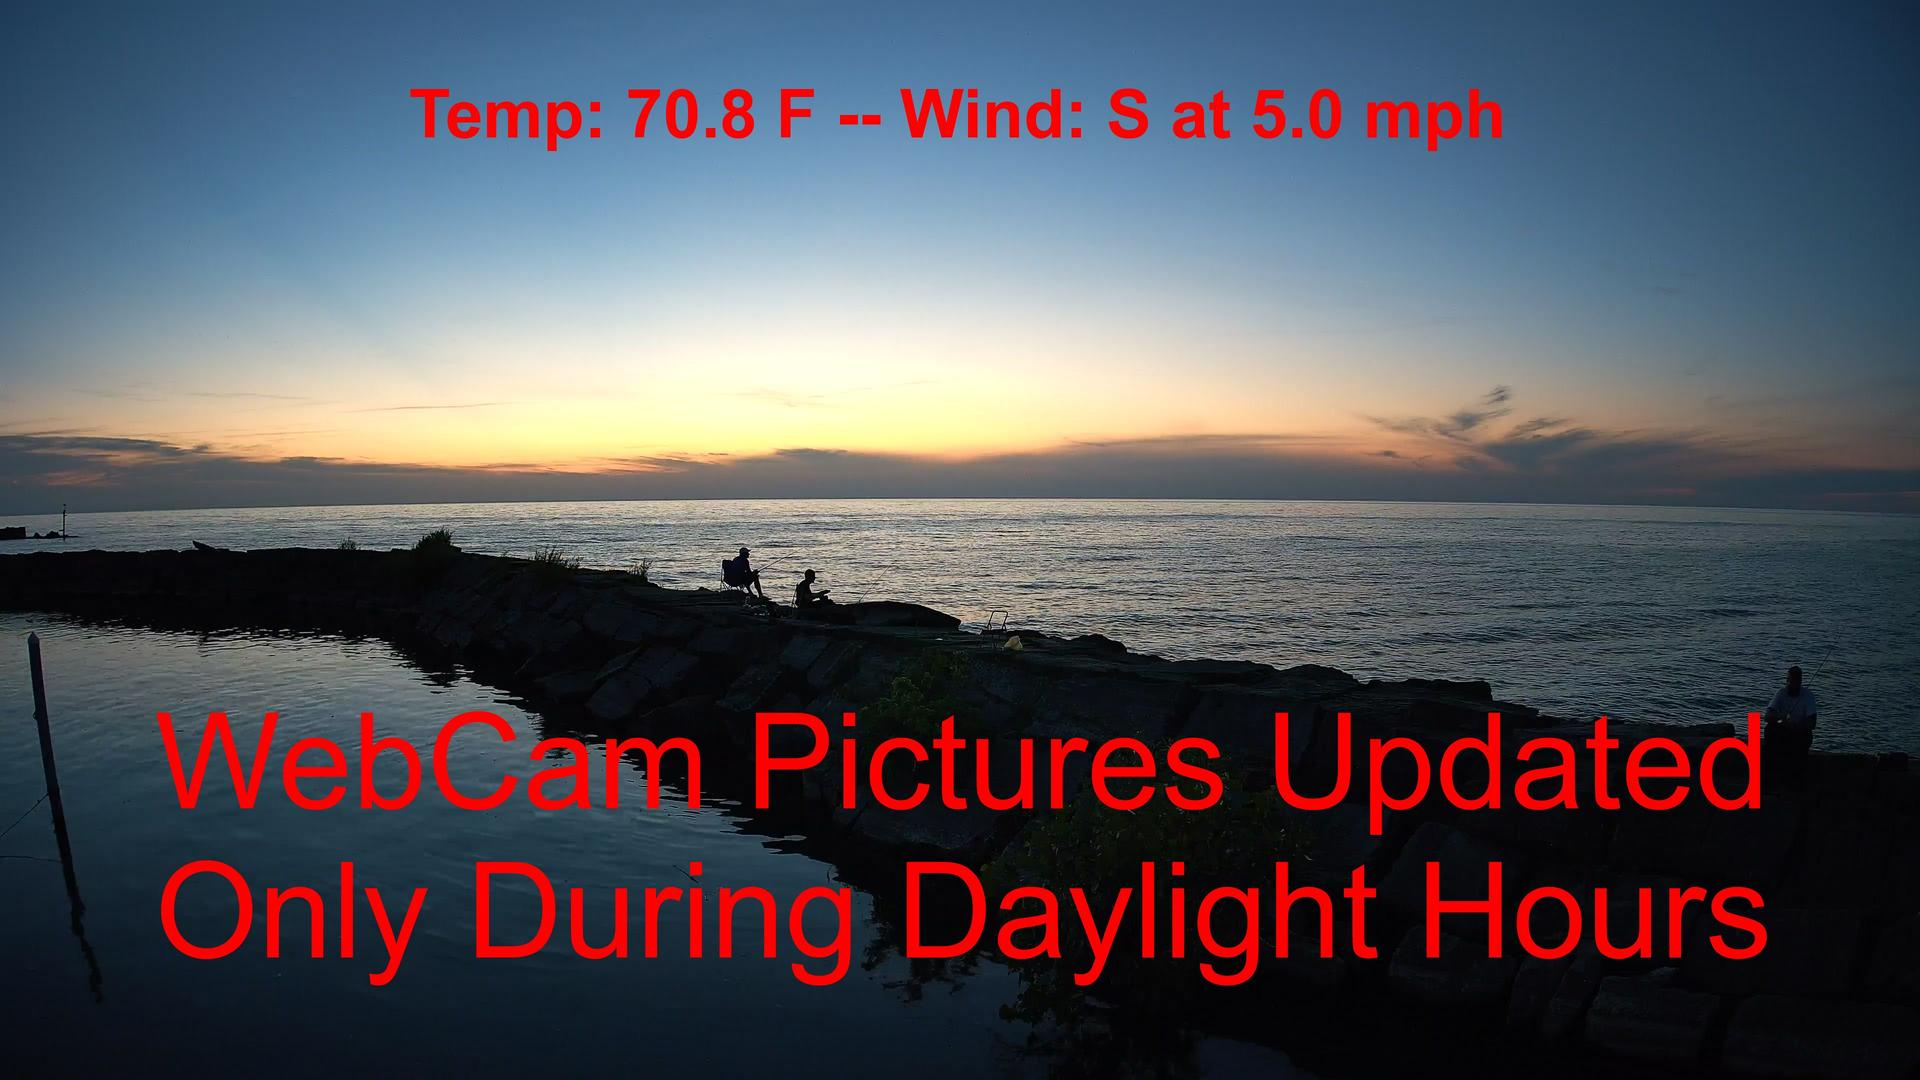 Webcam Wildwood Yacht Club › North-East: › North-East: Un